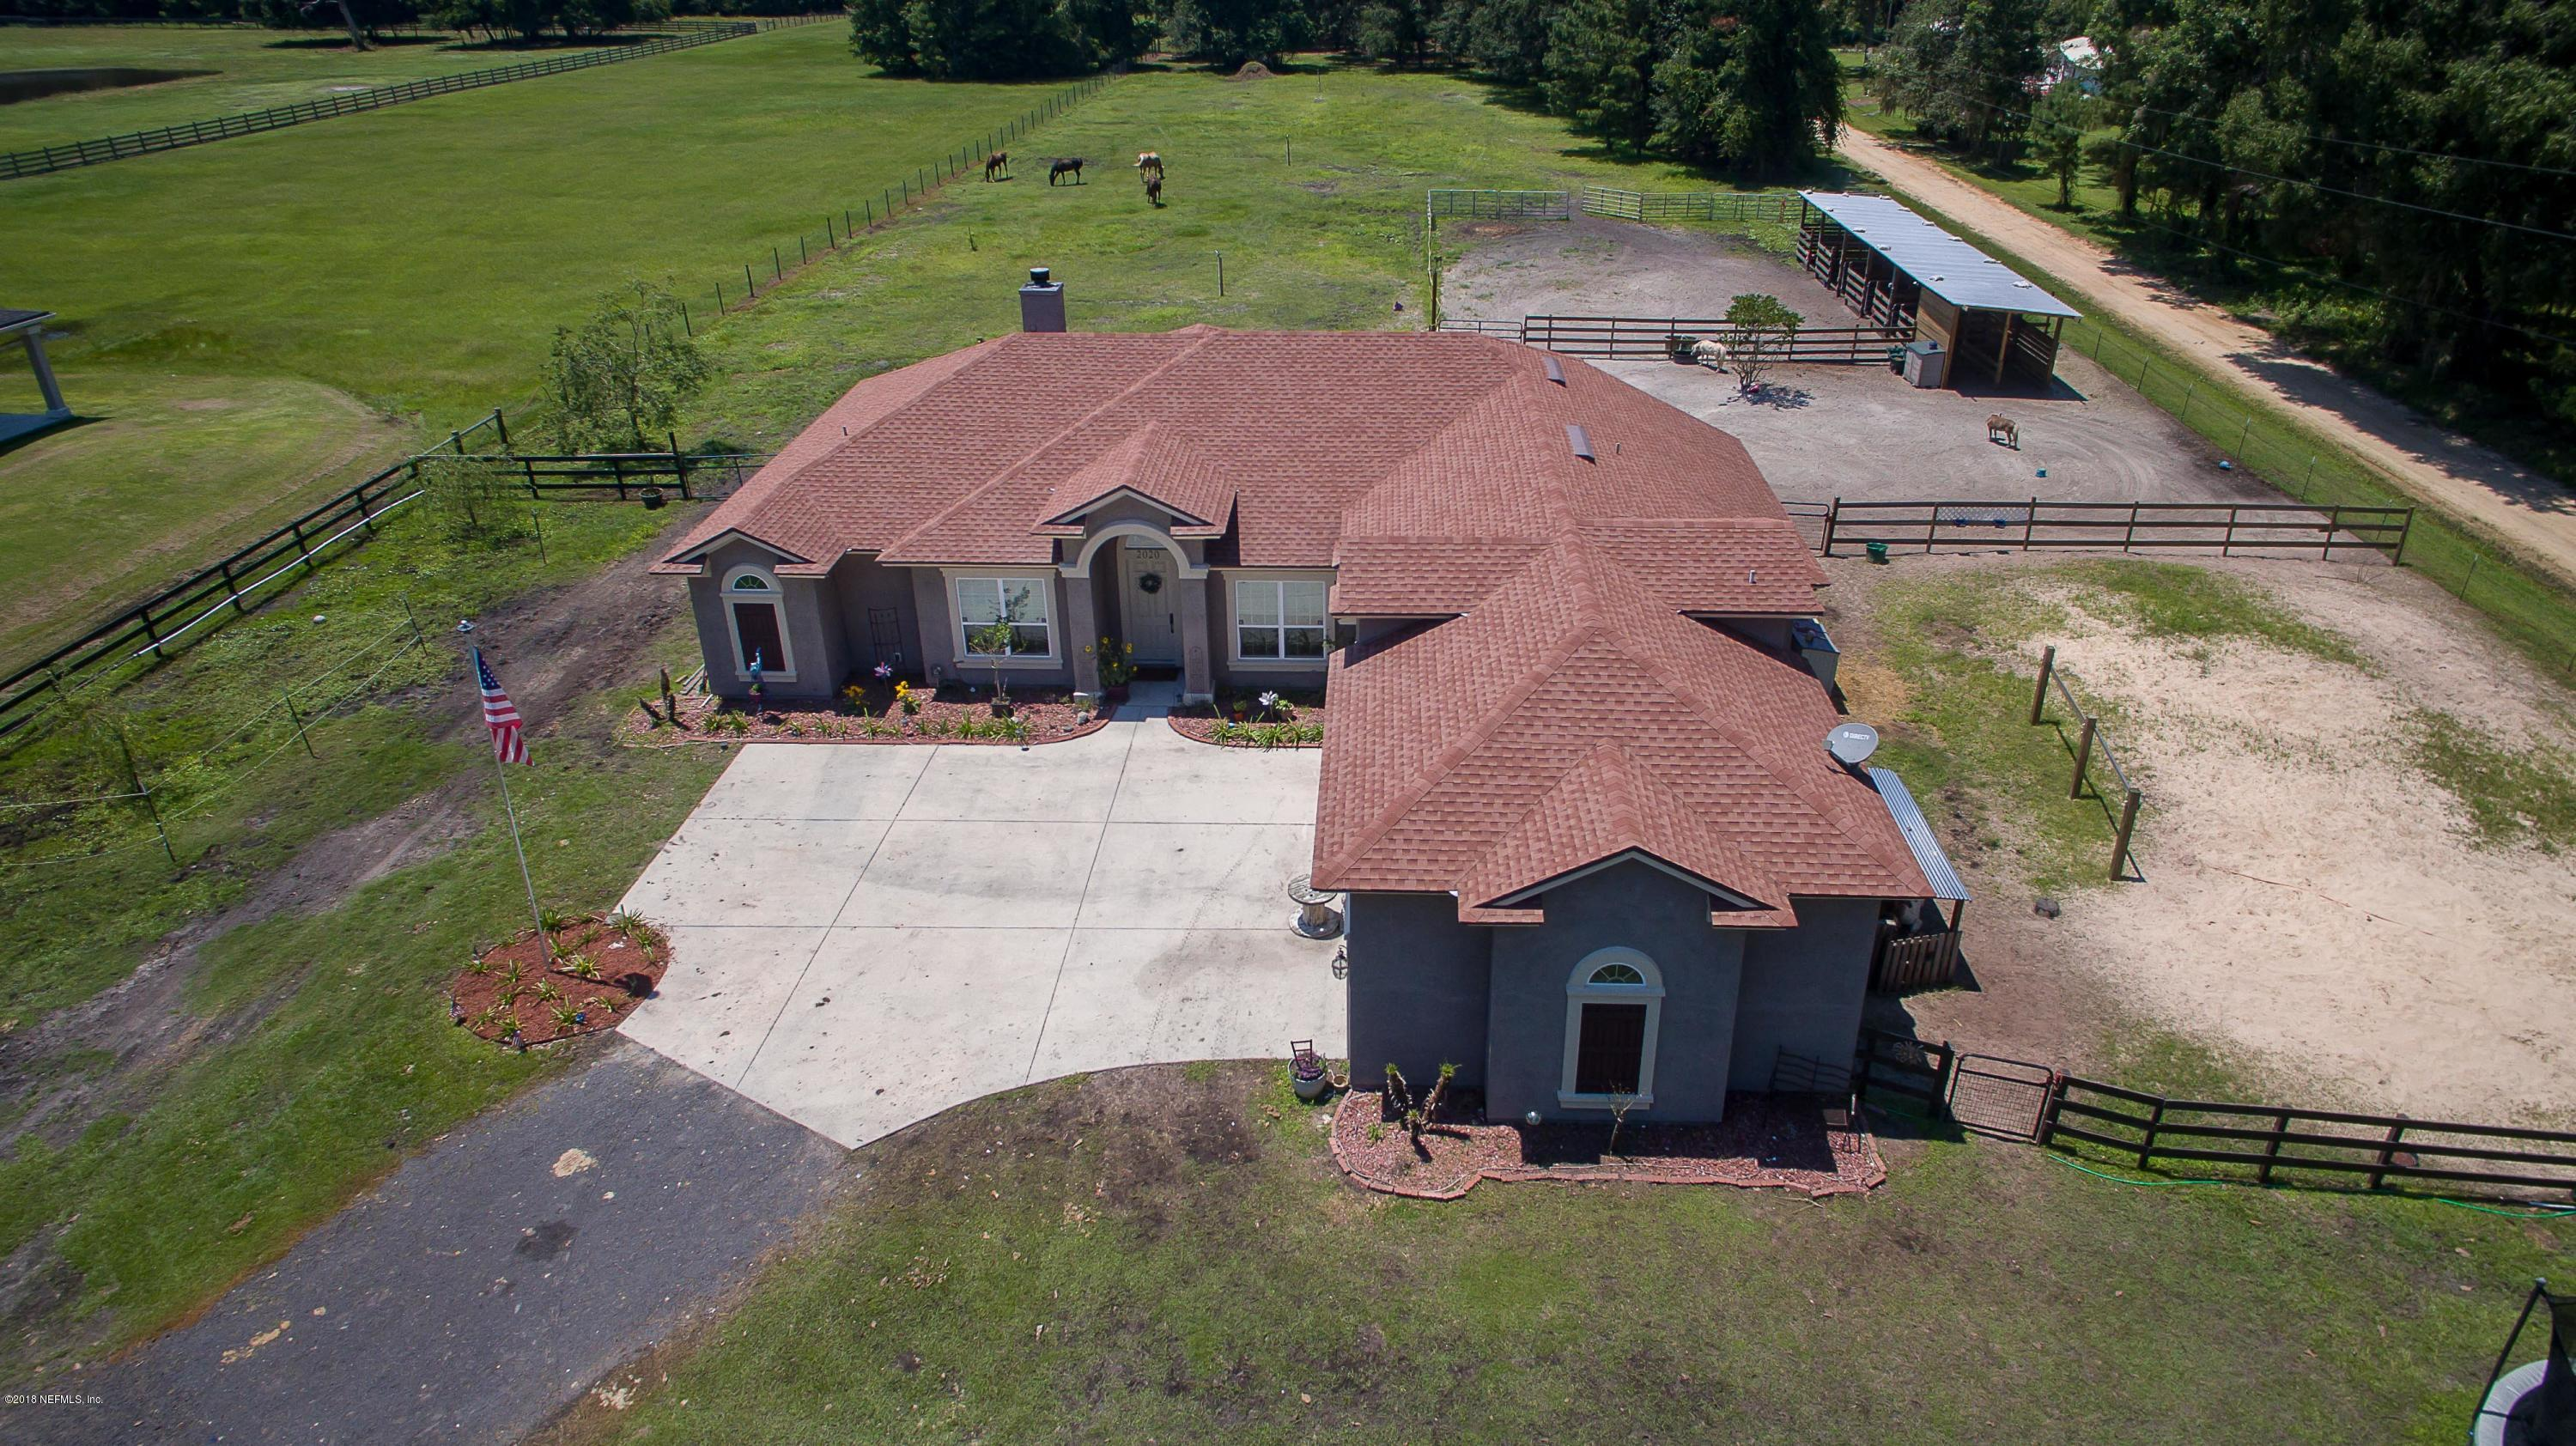 2020 COUNTY ROAD 209B, GREEN COVE SPRINGS, FLORIDA 32043, 5 Bedrooms Bedrooms, ,3 BathroomsBathrooms,Residential - single family,For sale,COUNTY ROAD 209B,945809